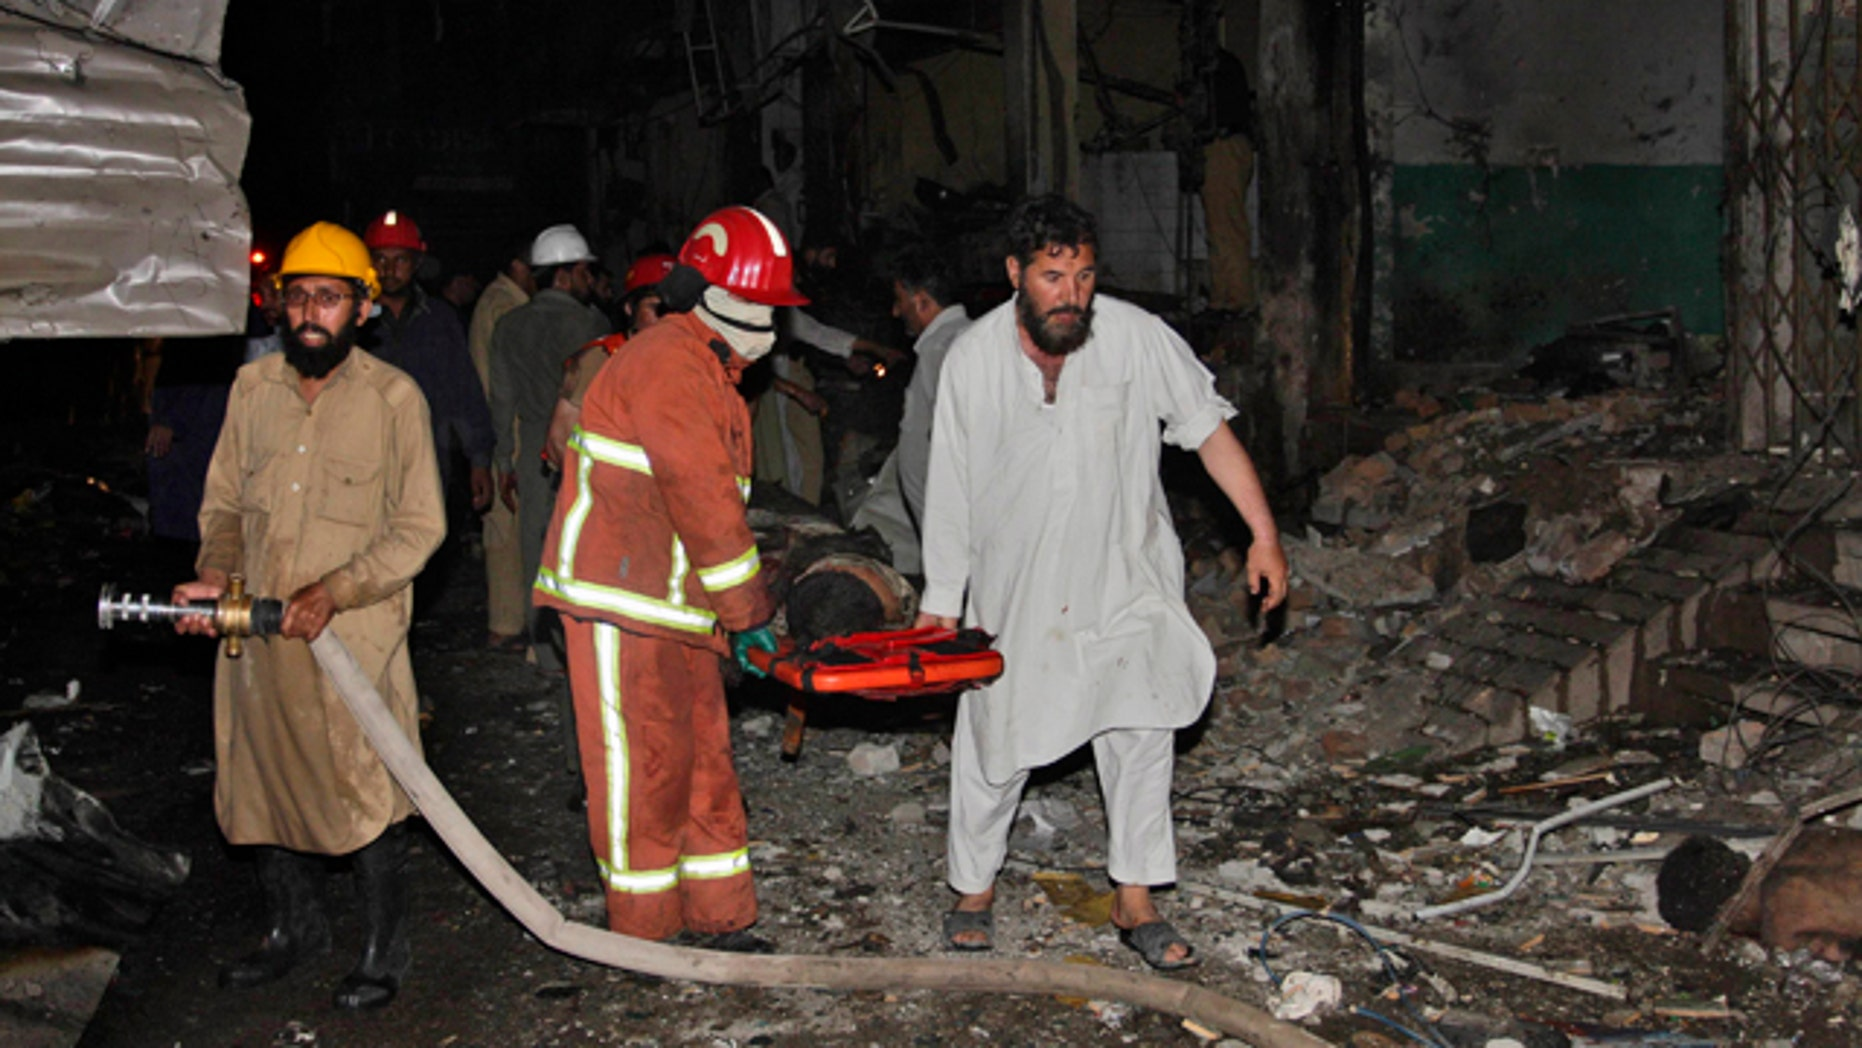 June 12: Pakistani rescue workers carry away a wounded man from the site of an explosion in Peshawar, Pakistan.